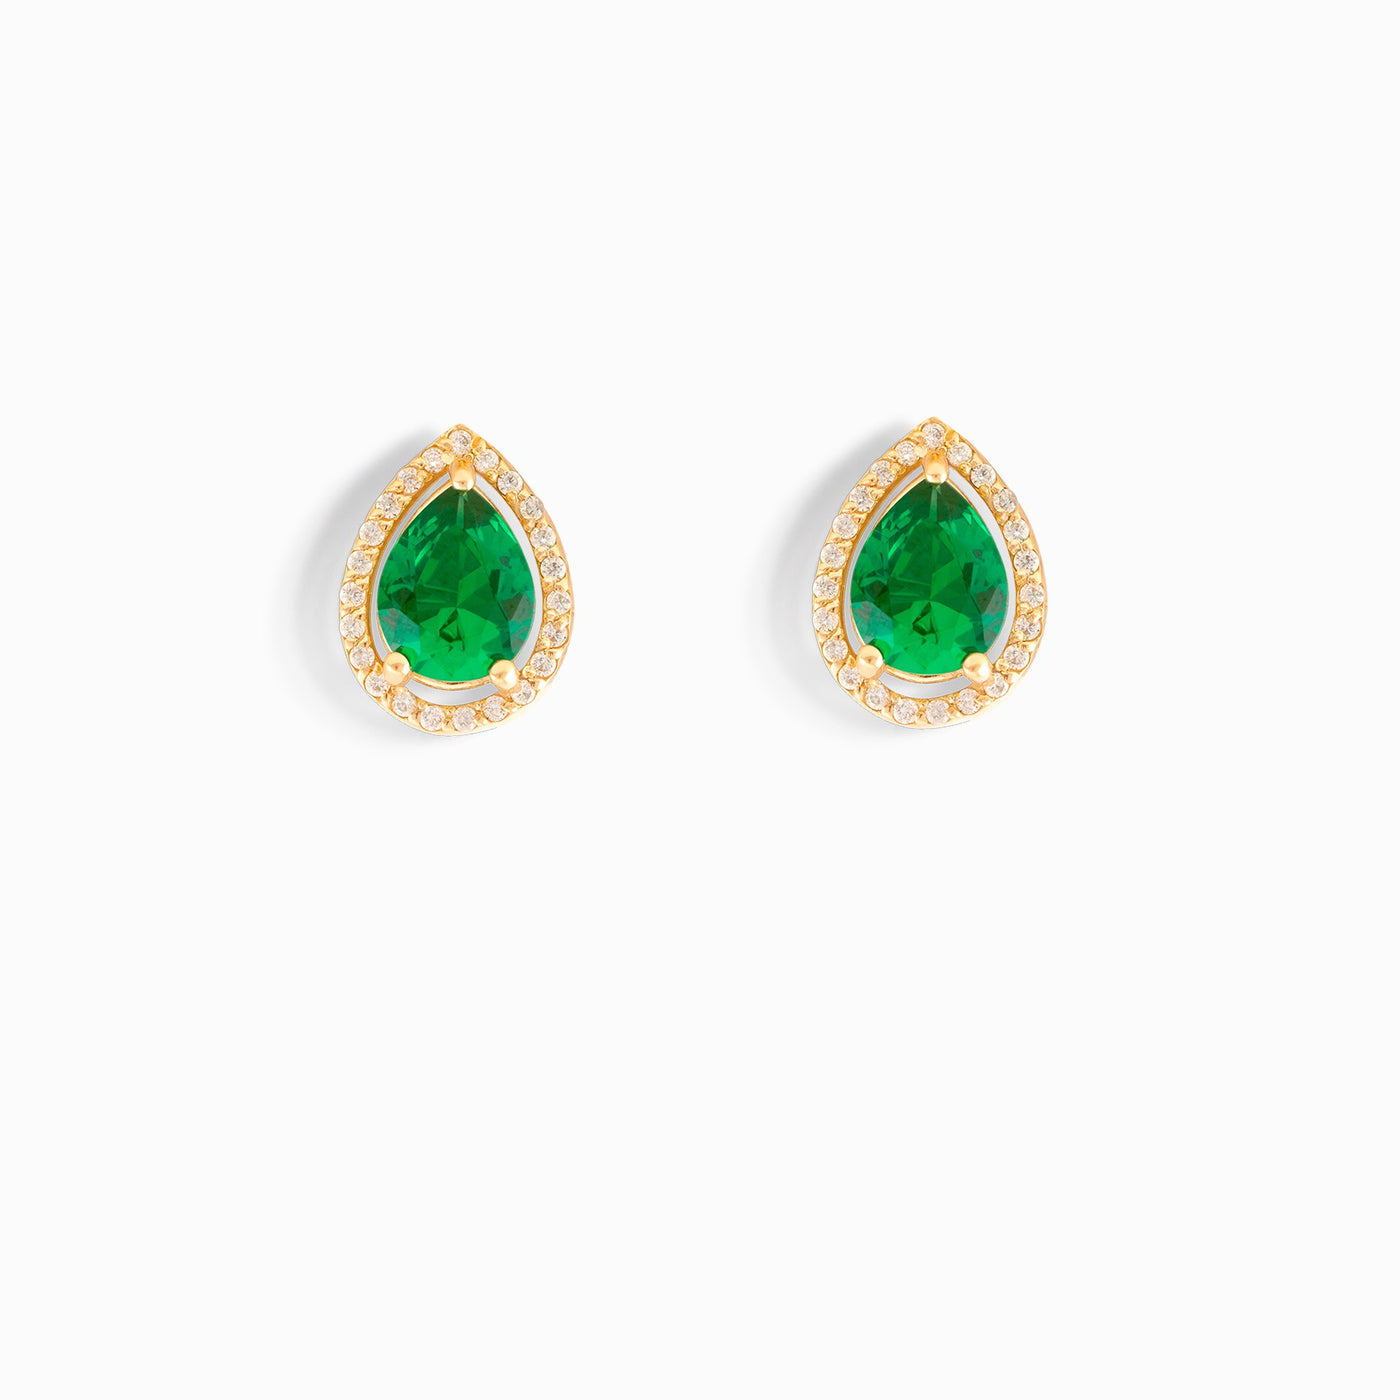 Pear Shaped Emerald Stud Earrings